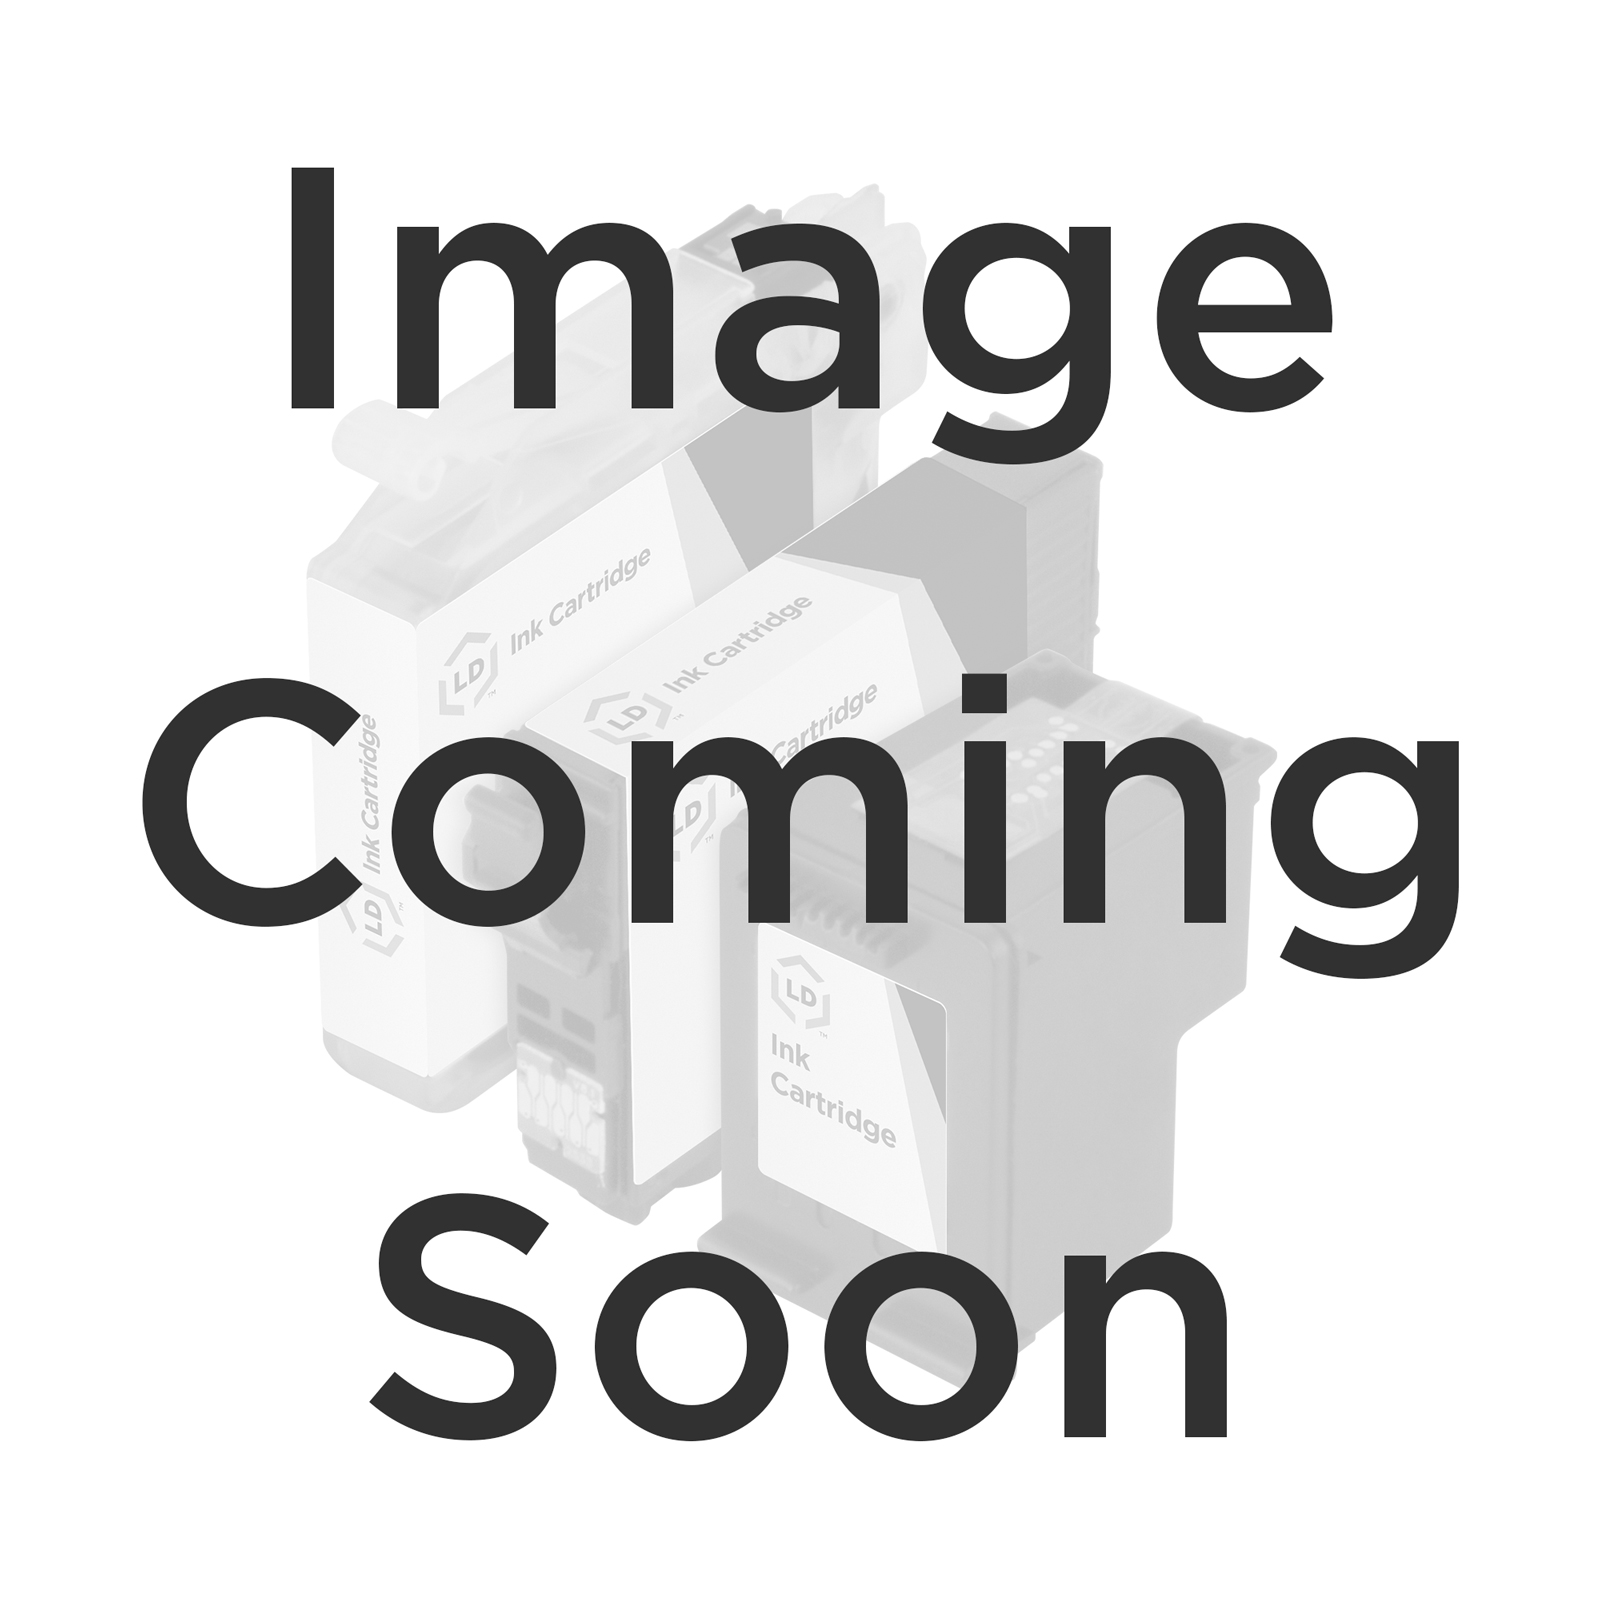 Redi-Tag Permanent Alphabetical Tab Indexes - 104 per pack - White Tab